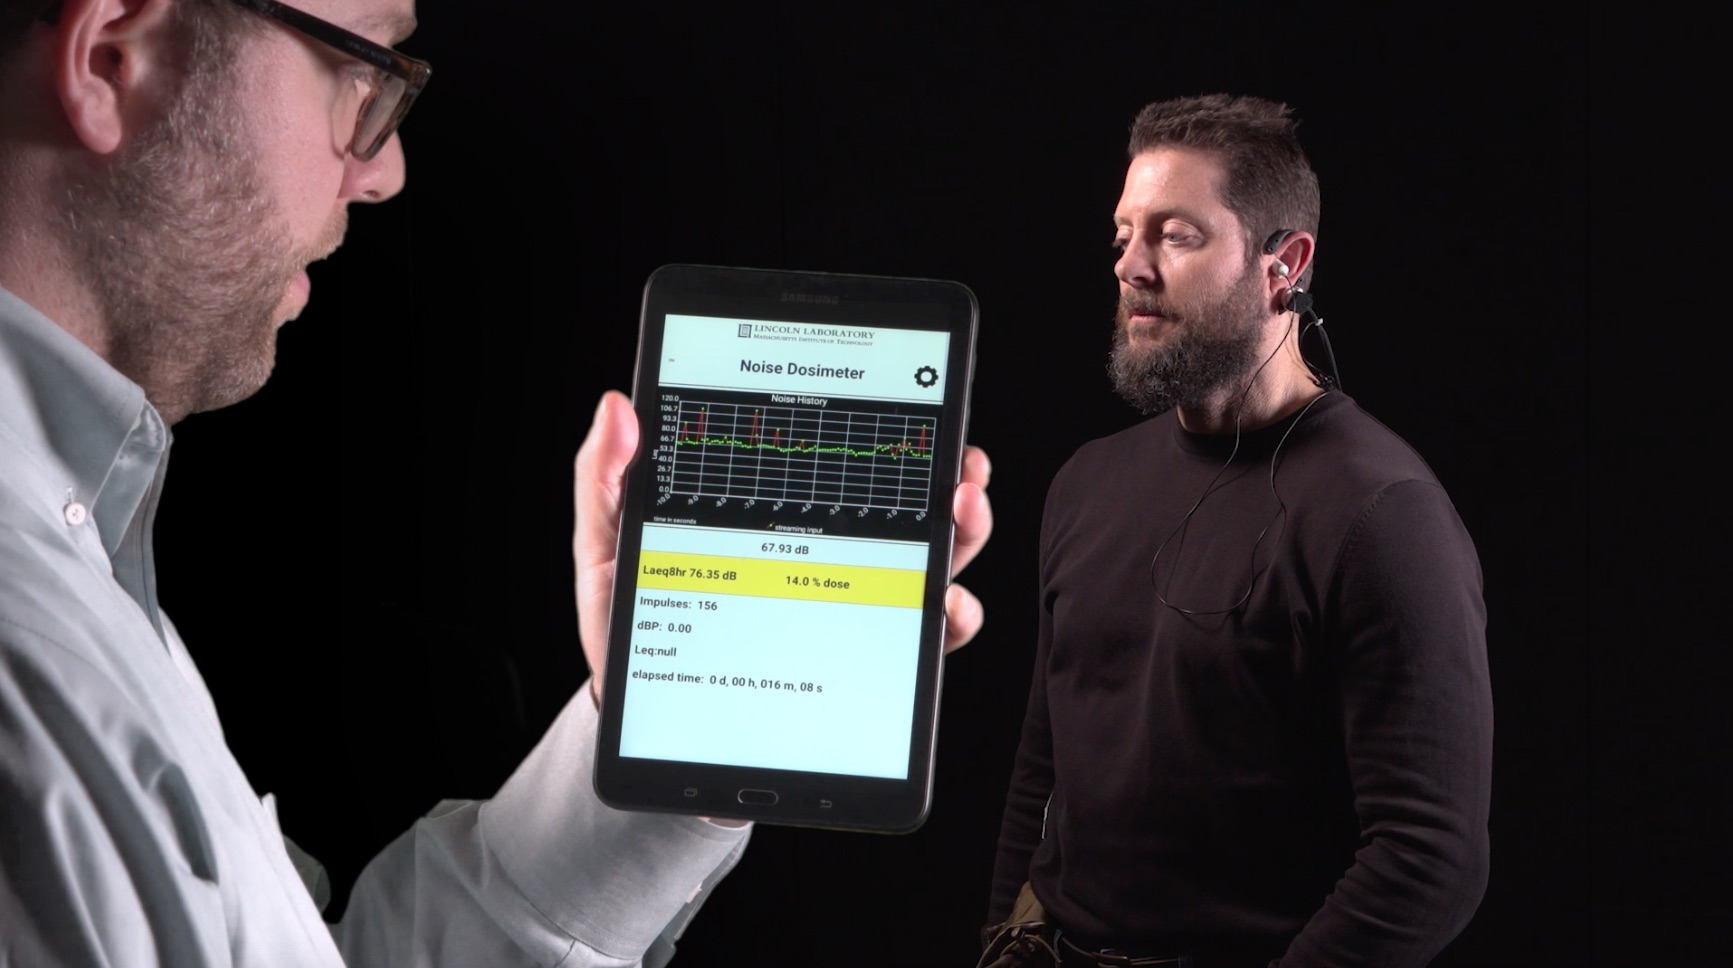 A researcher holds a tablet showing the MNOISE app while a user wears the MNOSIE earpiece.